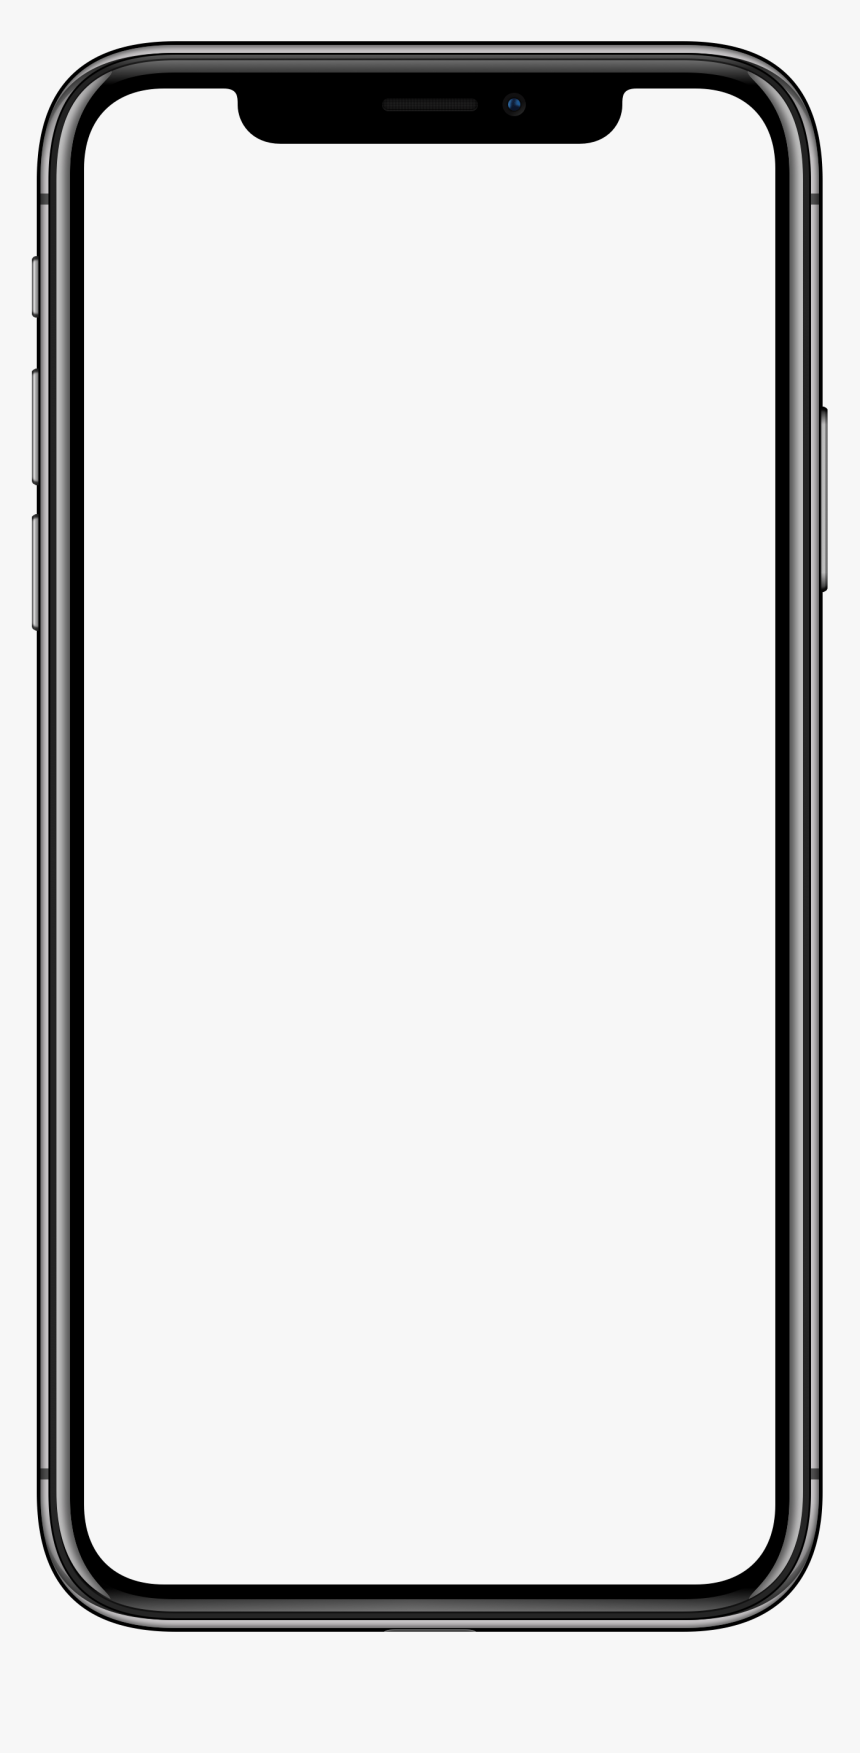 Transparent Black Line Png Blank White Screen Of Iphone X Png Download Transparent Png Image Pngitem Large collections of hd transparent black line png images for free download. transparent black line png blank